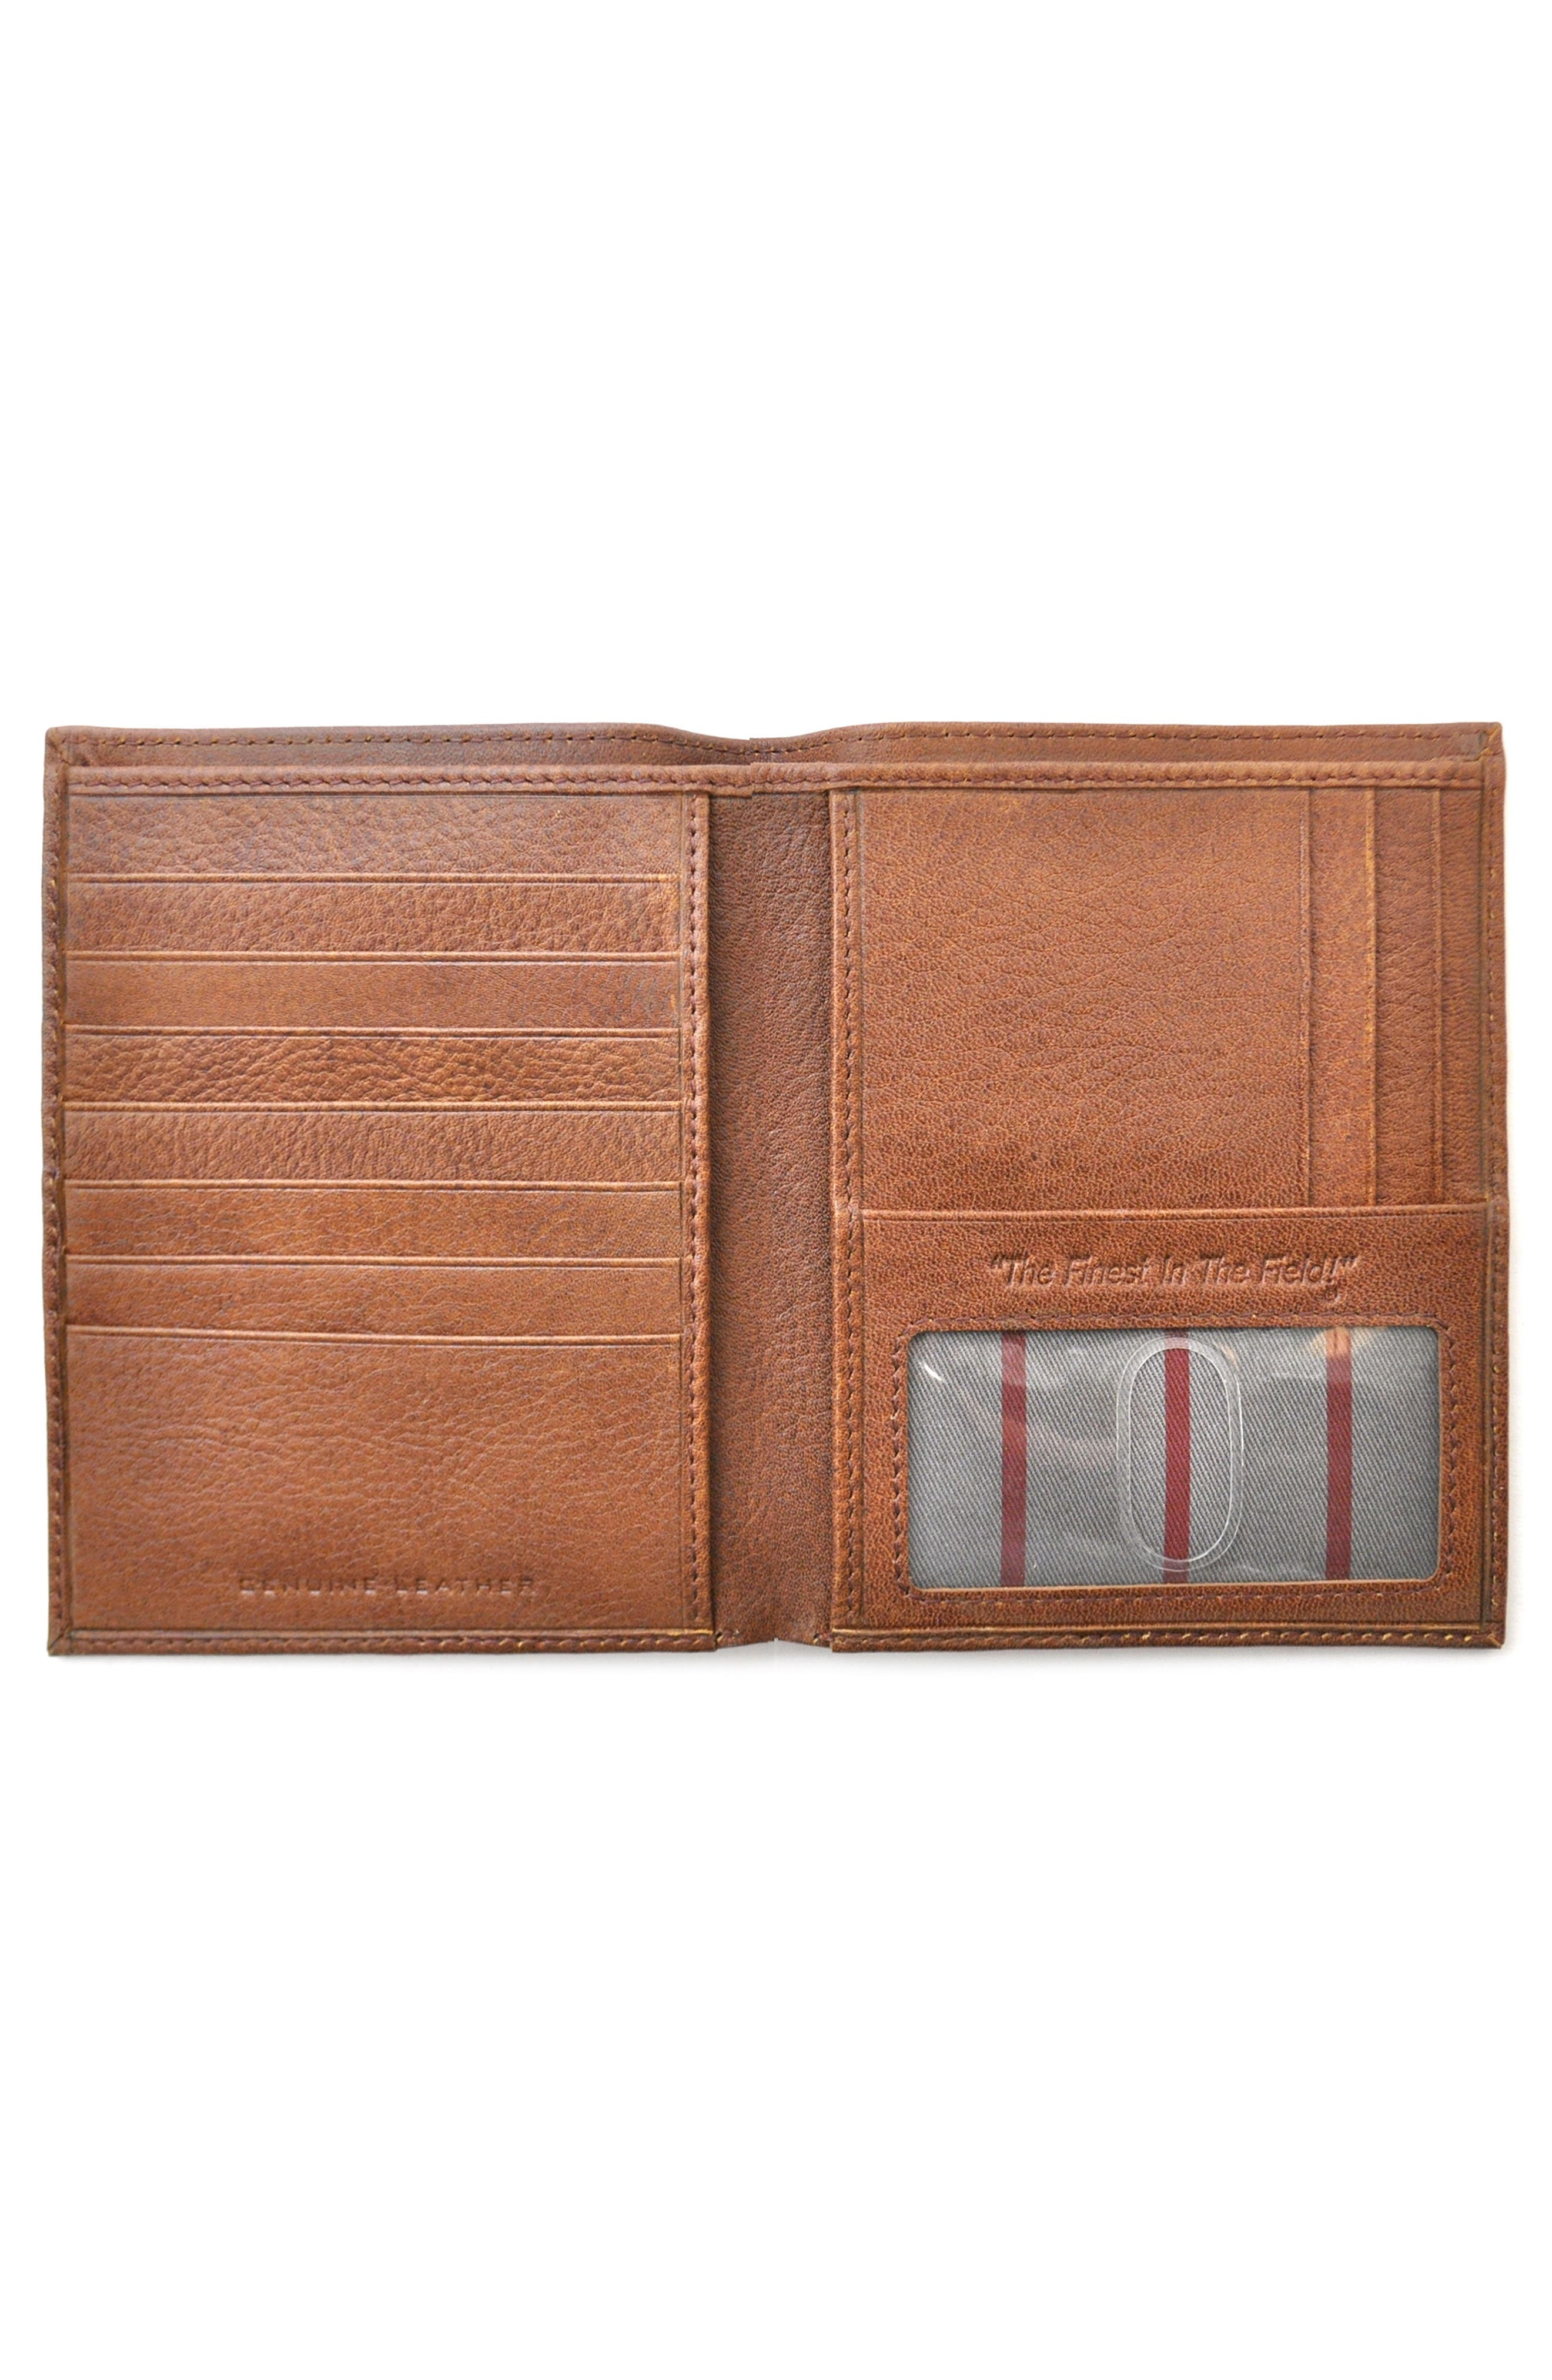 Triple Play Leather Executive Wallet,                             Alternate thumbnail 2, color,                             202